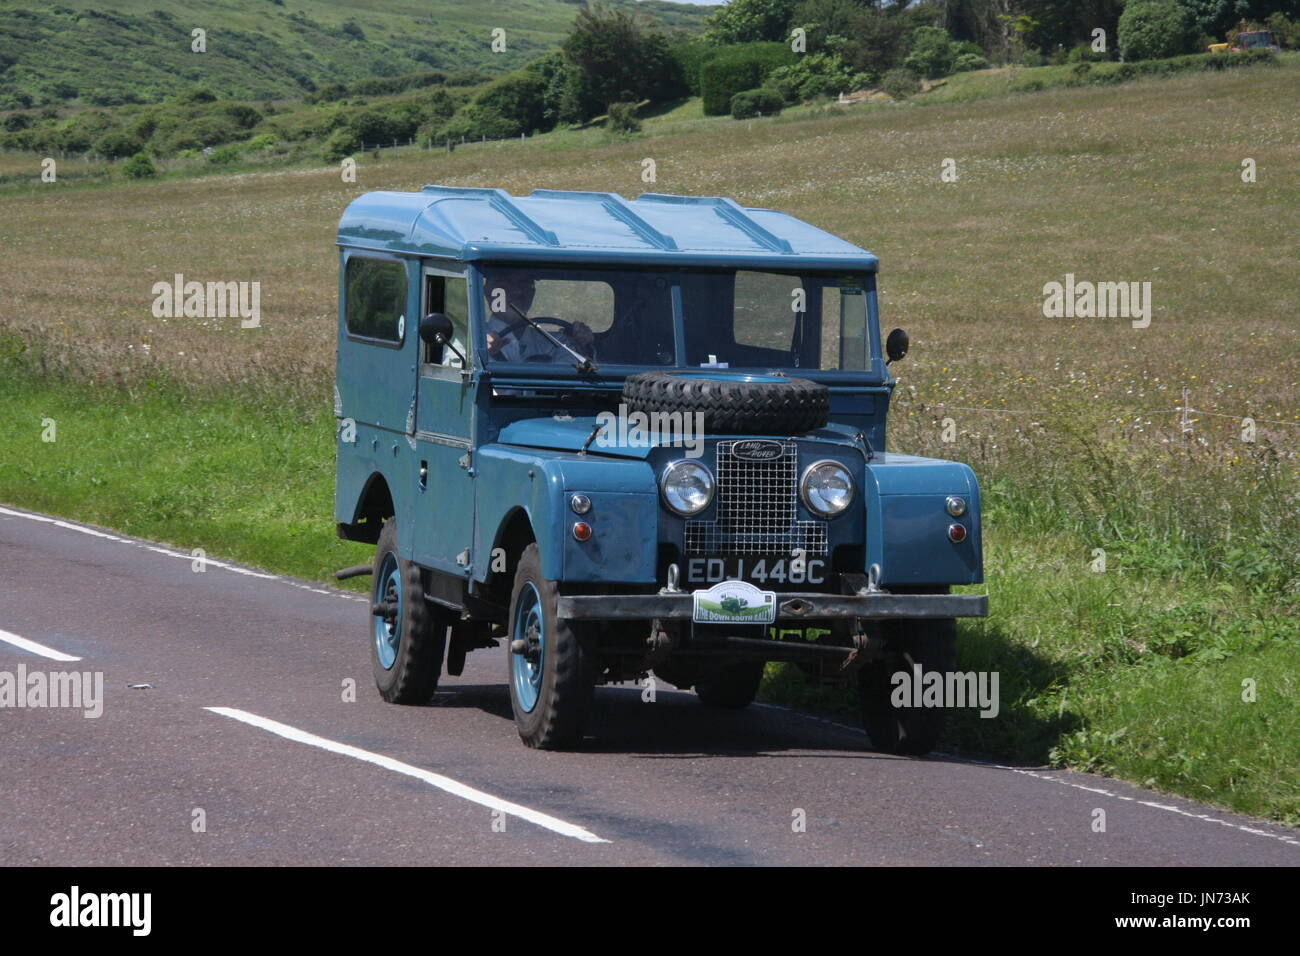 land rover series one stock photos land rover series one. Black Bedroom Furniture Sets. Home Design Ideas